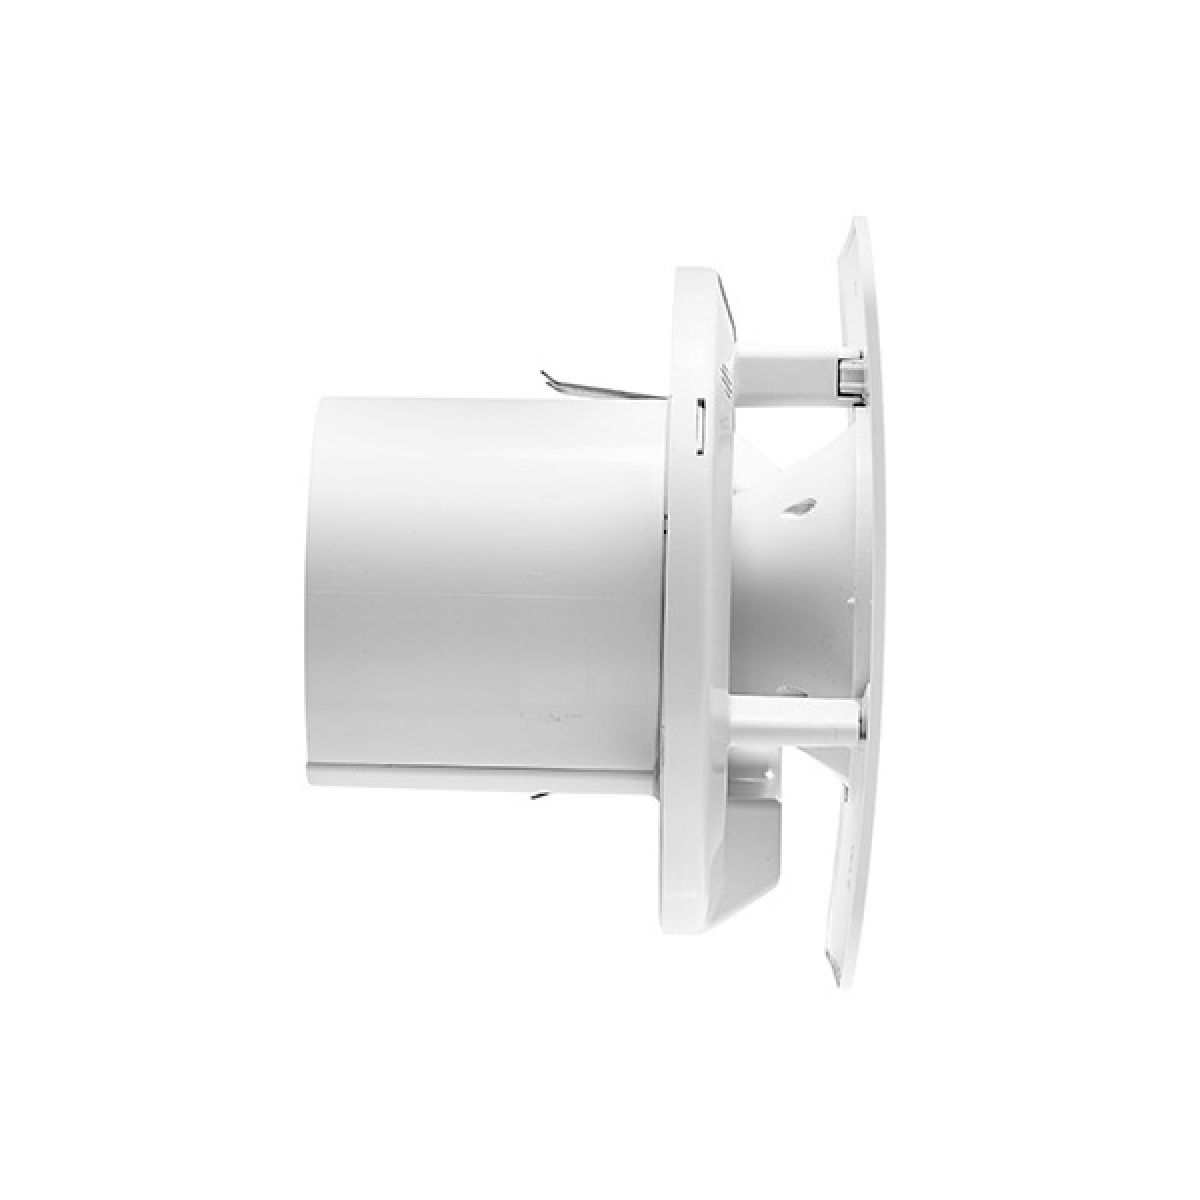 Xpelair Simply Silent Contour Square Bathroom Fan 100mm - Side